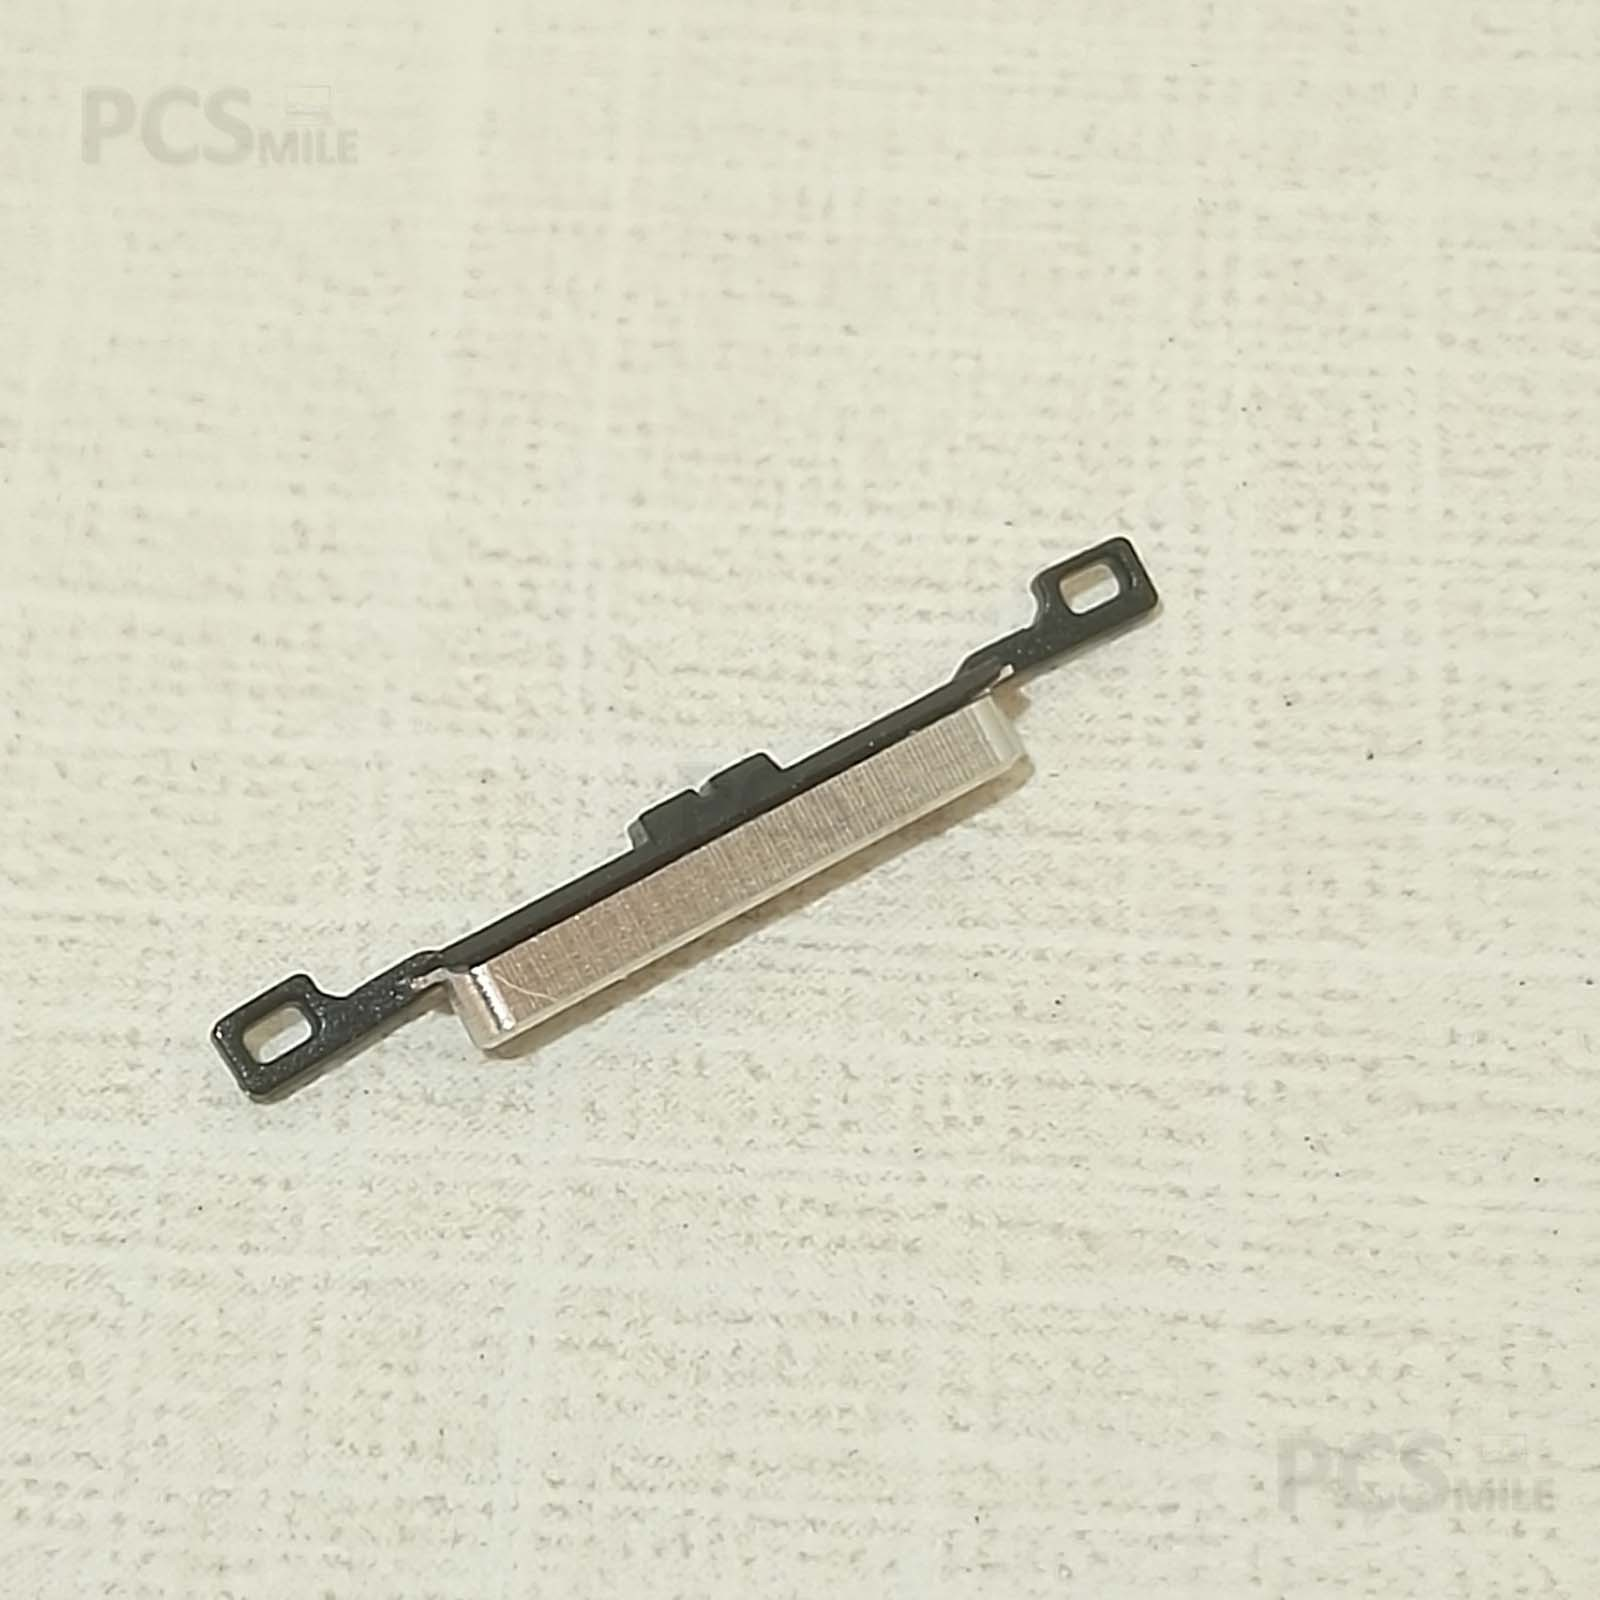 Tasto accensione originale per Samsung Galaxy S4 Gt-I9505 plusante power button